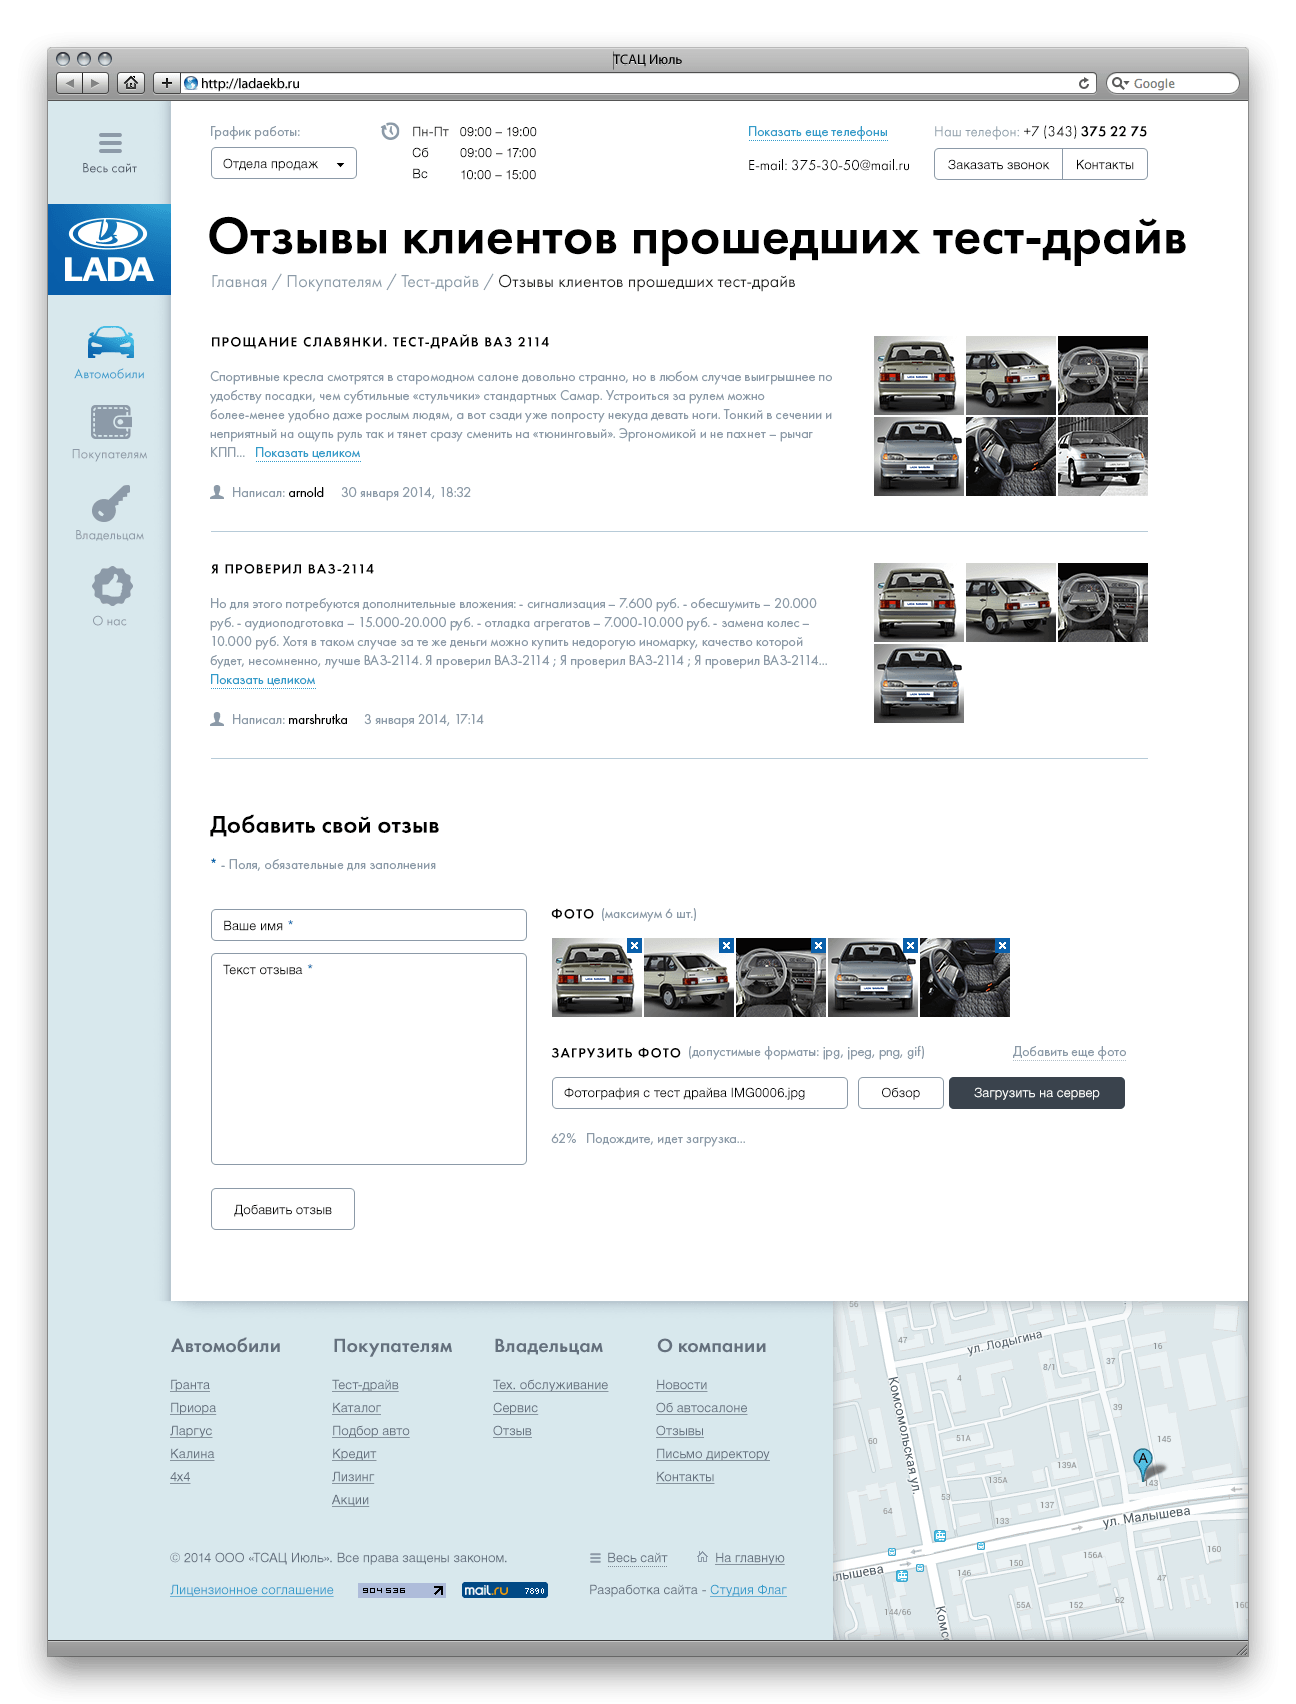 https://flagstudio.ru/wp-content/uploads/2014/12/ladaekb_single_auto_4.png